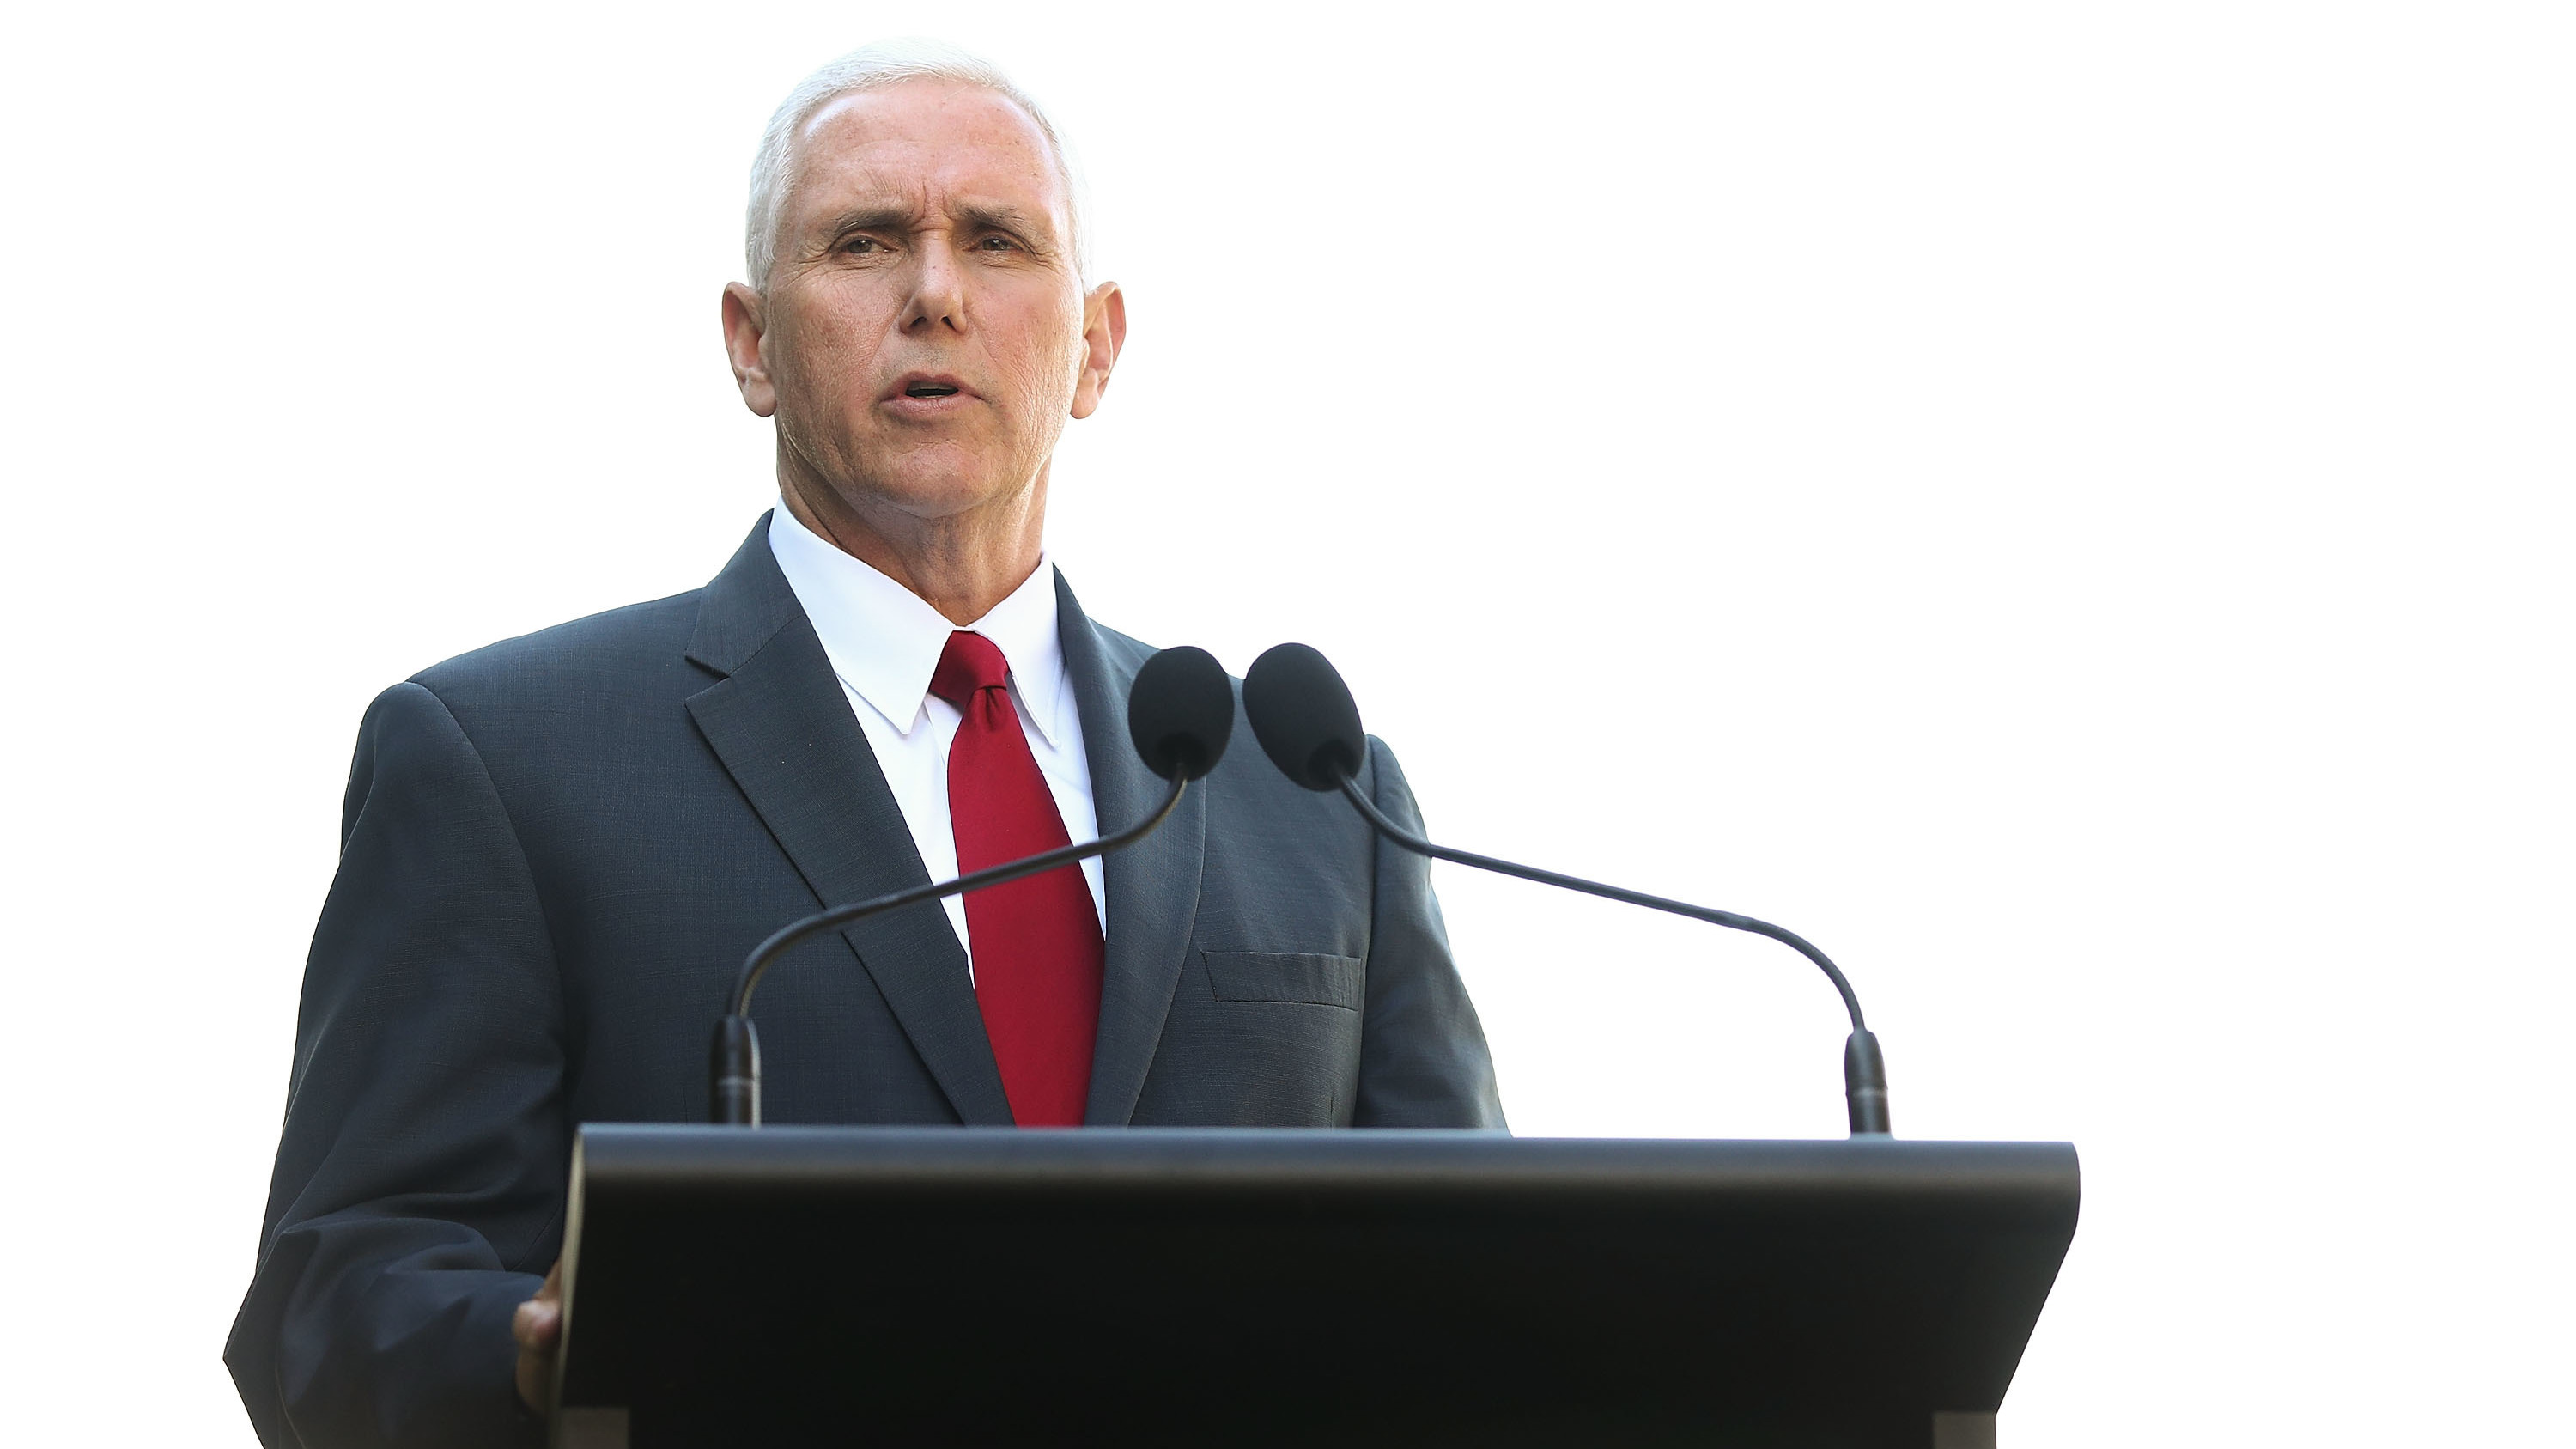 Mike Pence Hires Criminal Defense Lawyer